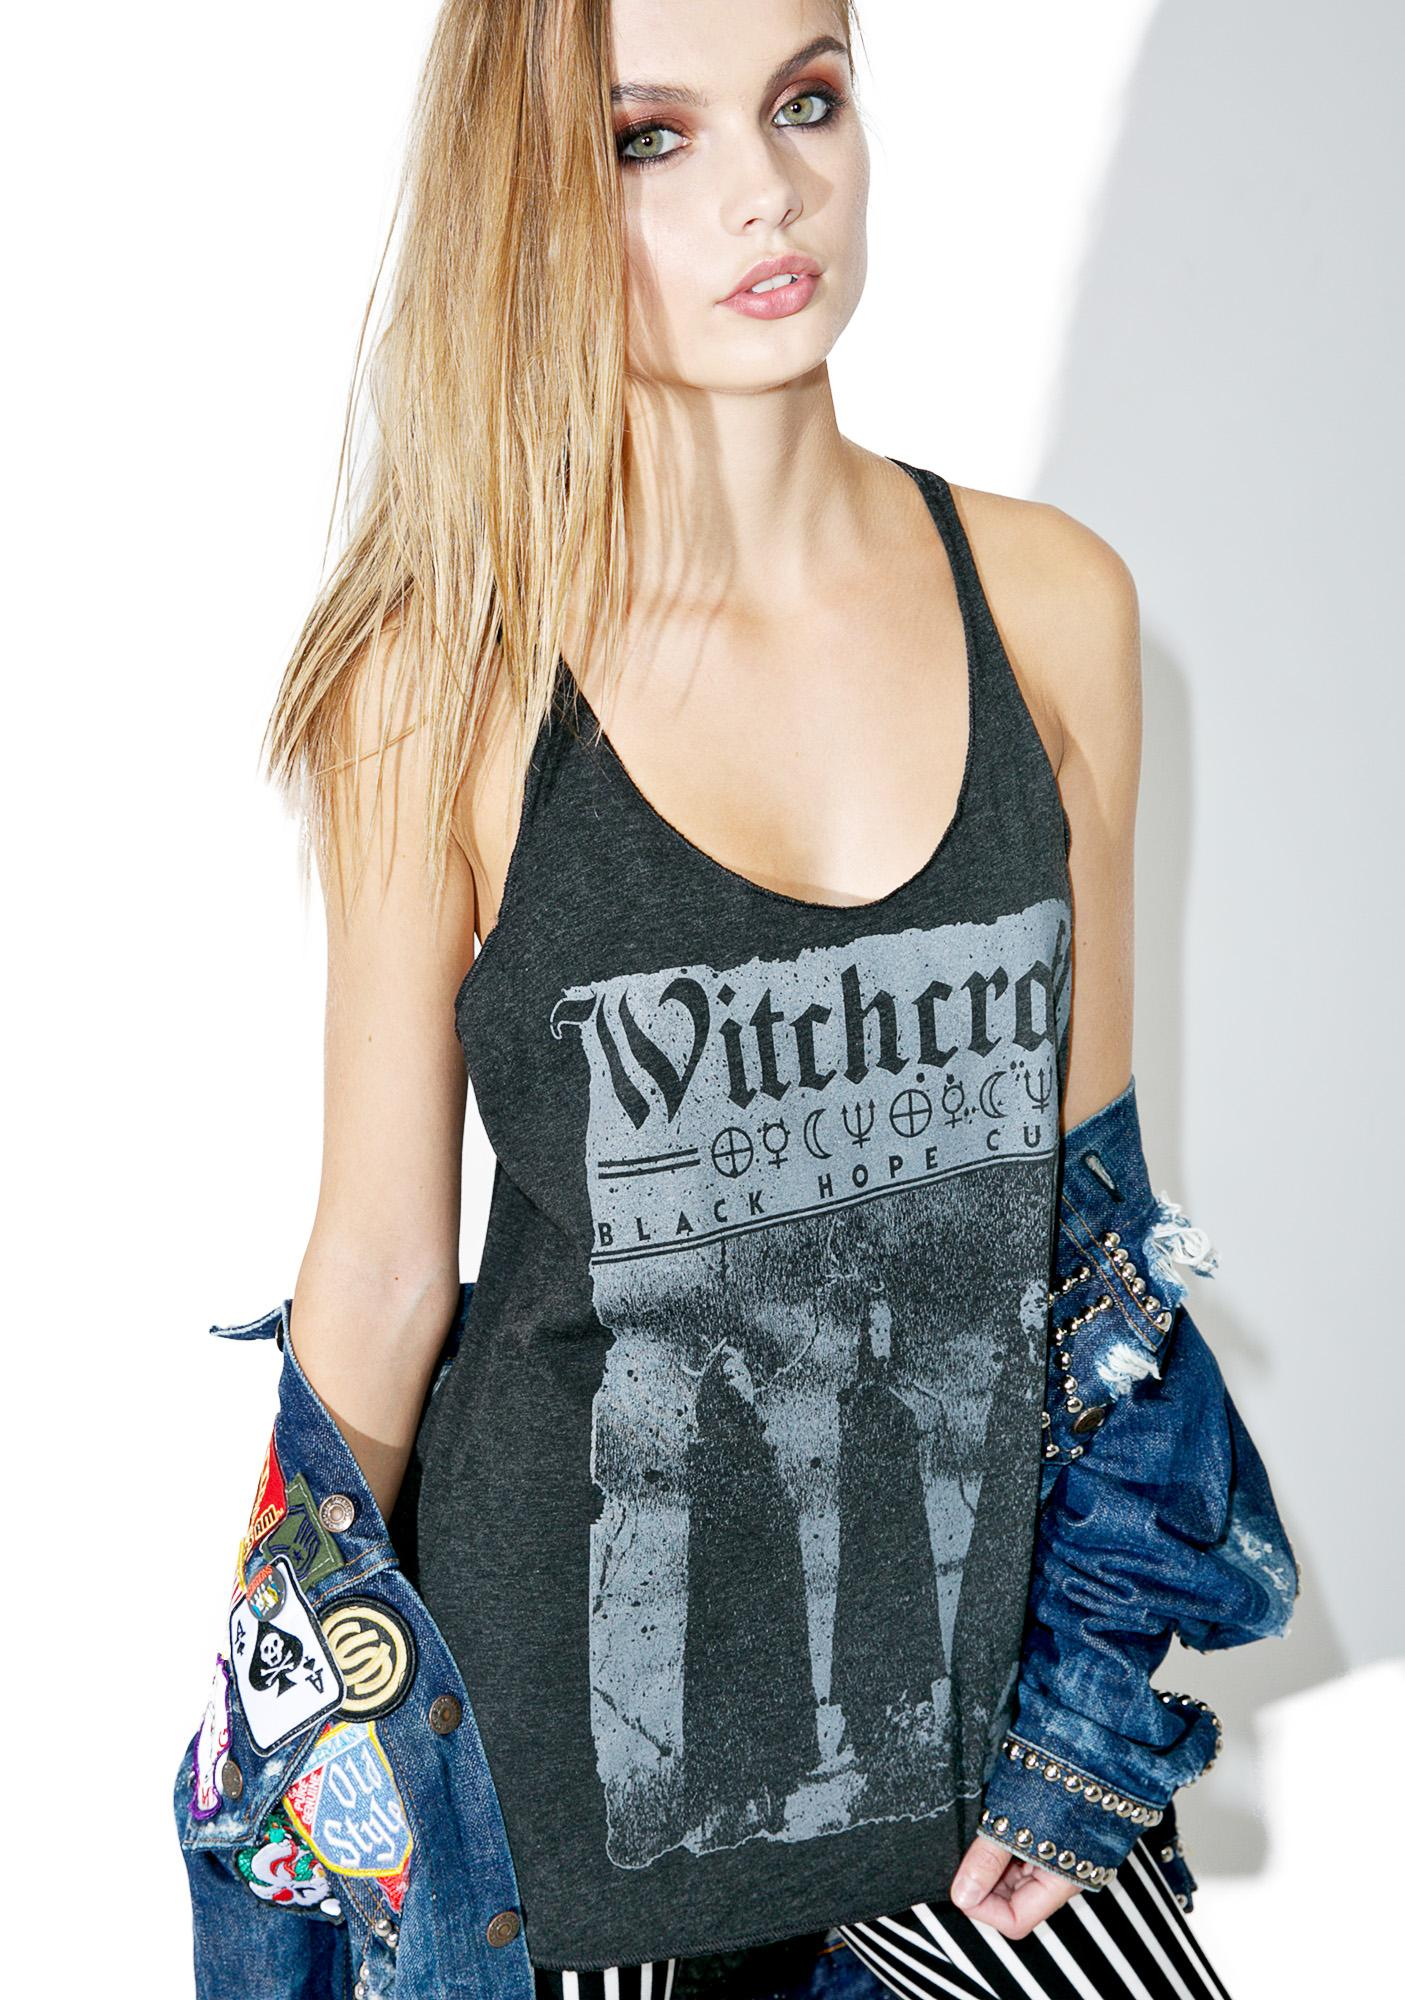 3 Witches Tank Top